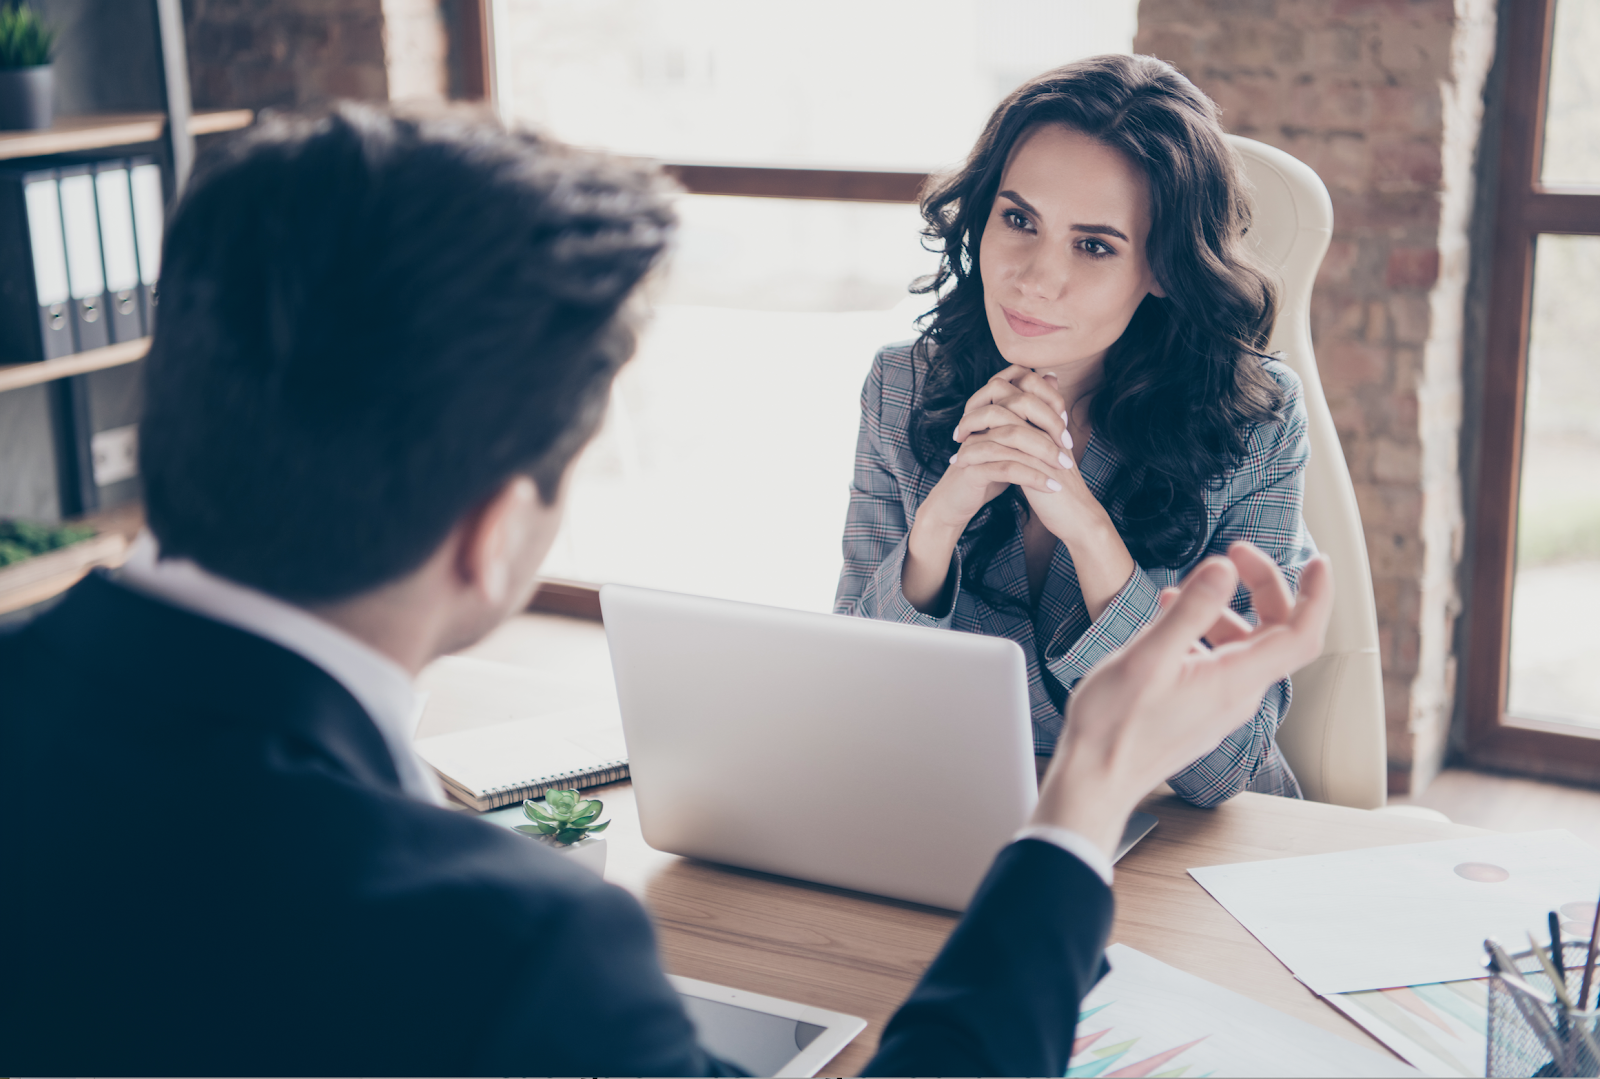 Strengths based recruitment: Woman interviewing an applicant